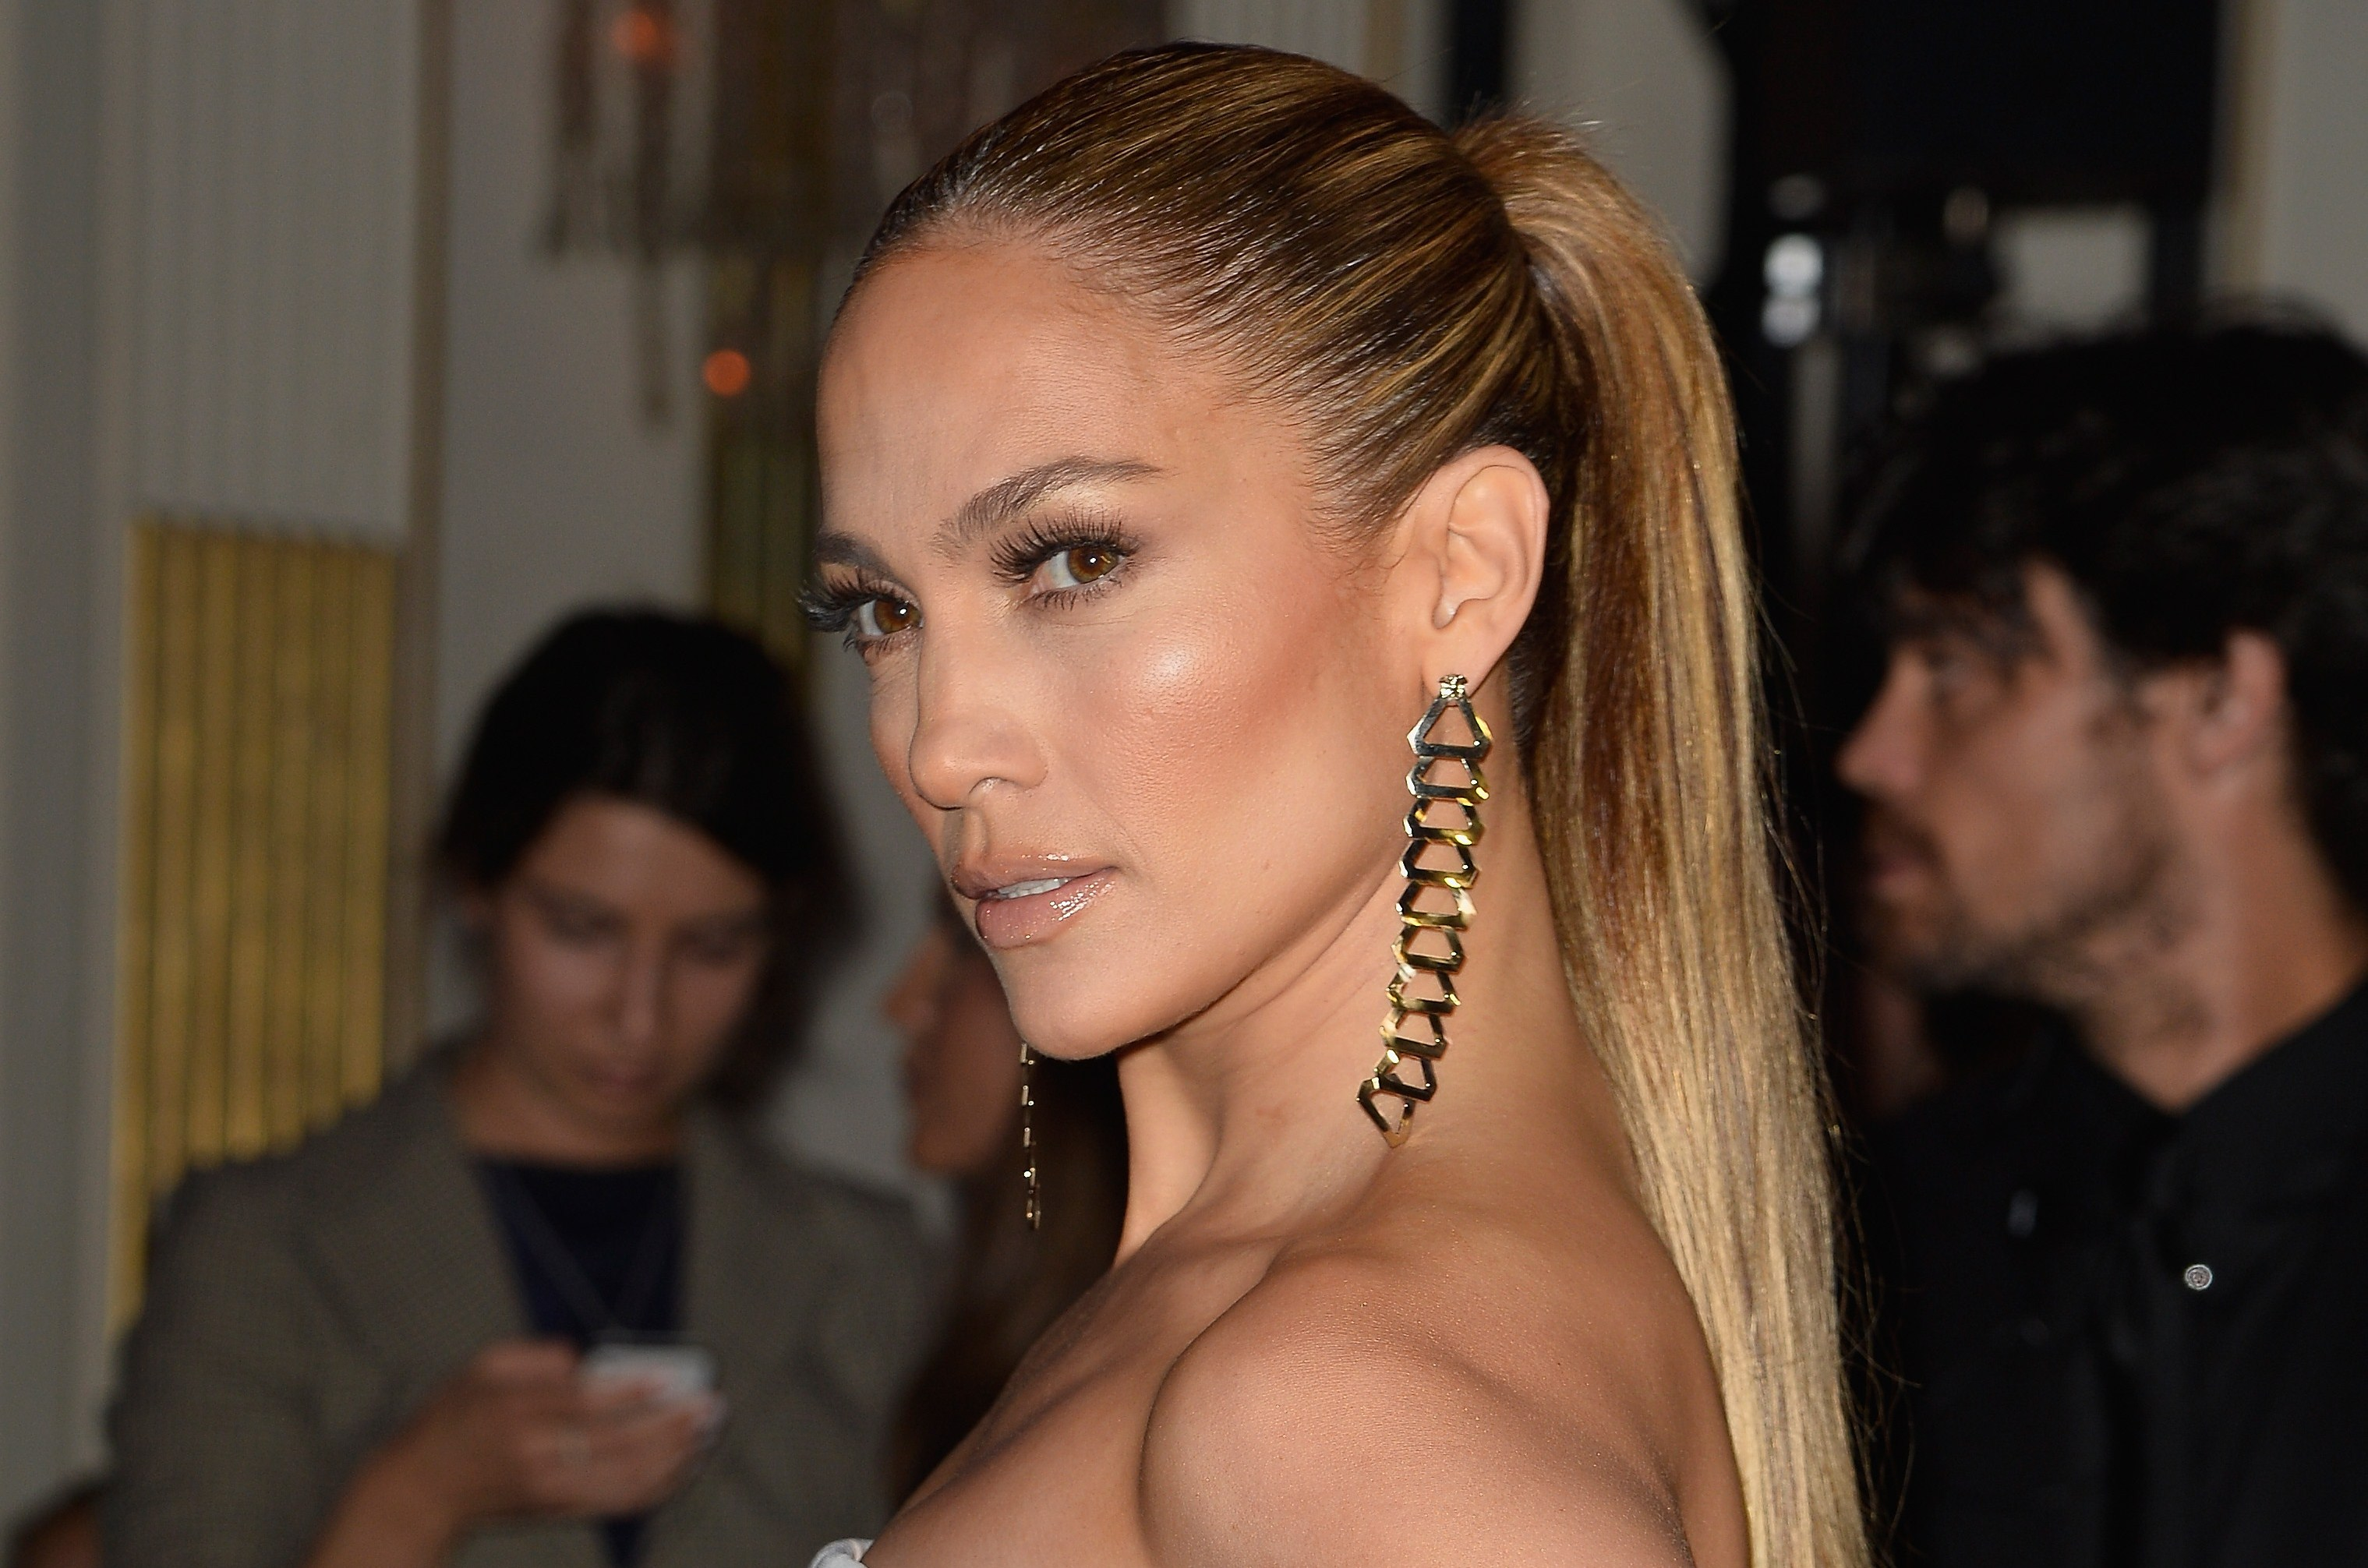 Copia il look di Jennifer Lopez con abiti ed accessori low cost (FOTO)